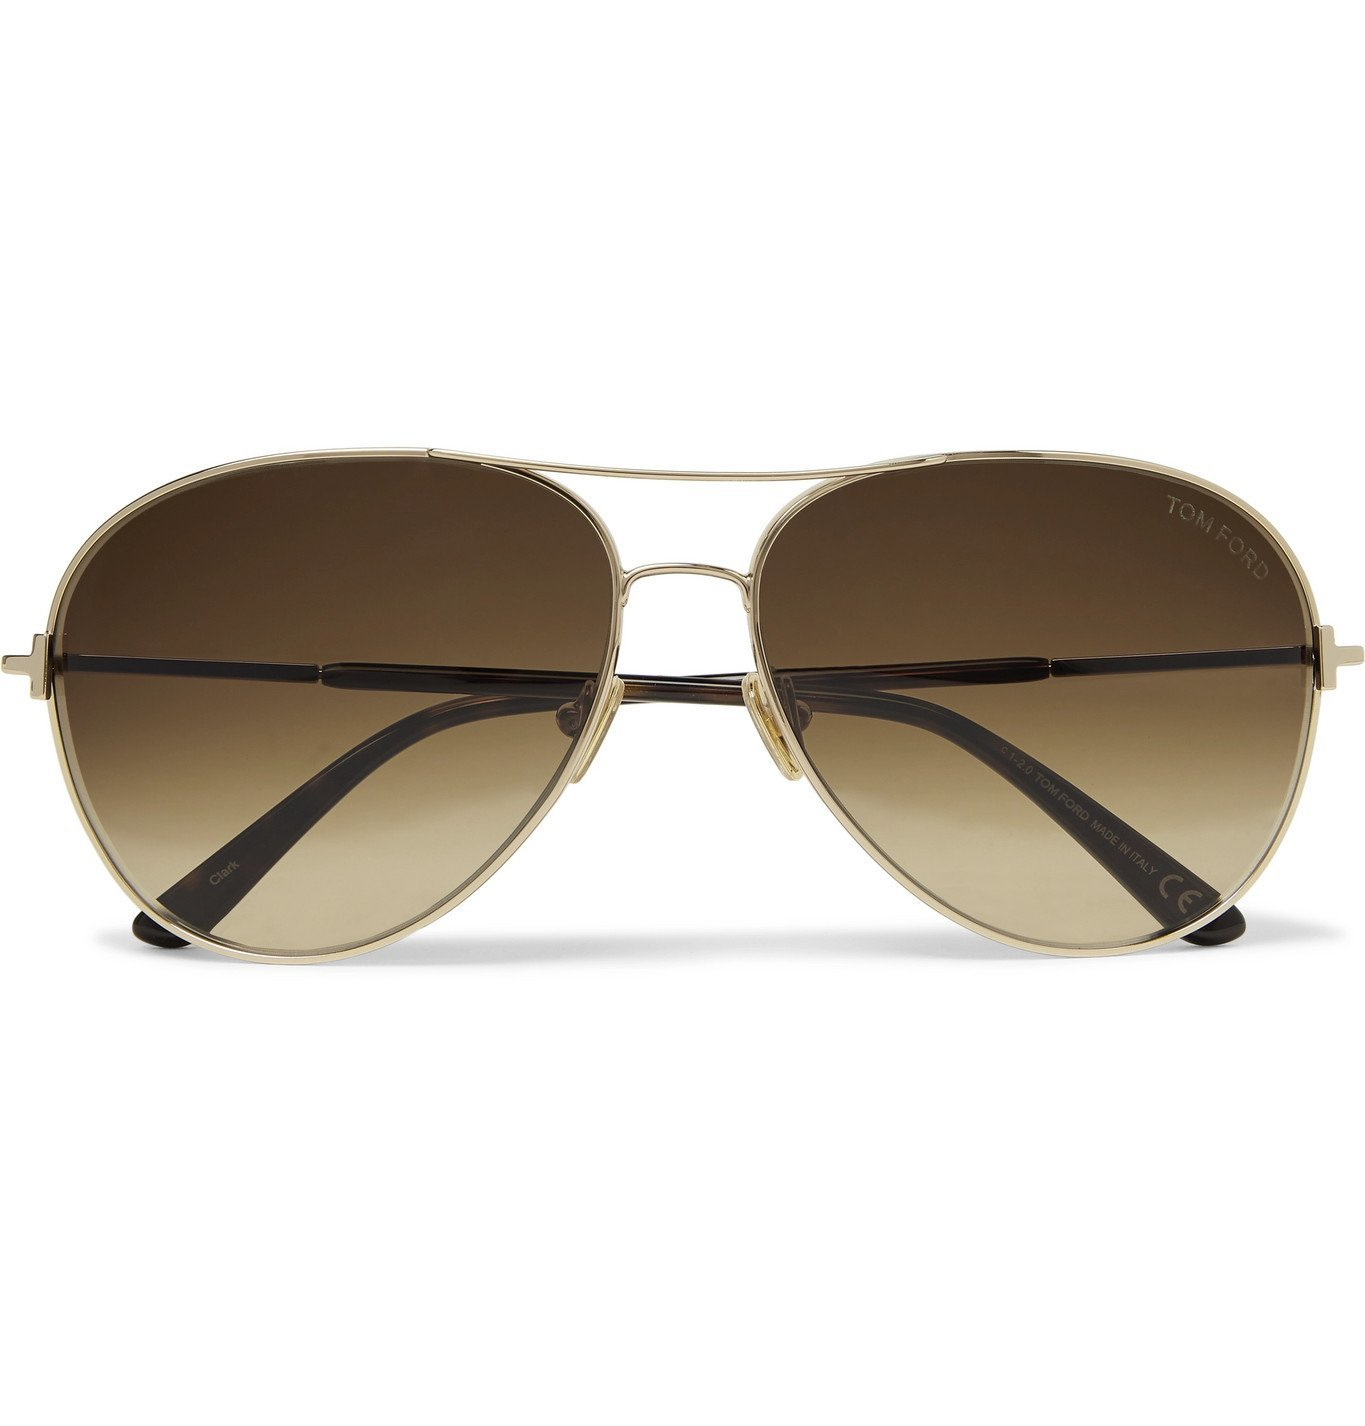 Photo: TOM FORD - Clark Aviator-Style Rose Gold-Tone and Tortoiseshell Acetate Sunglasses - Rose gold